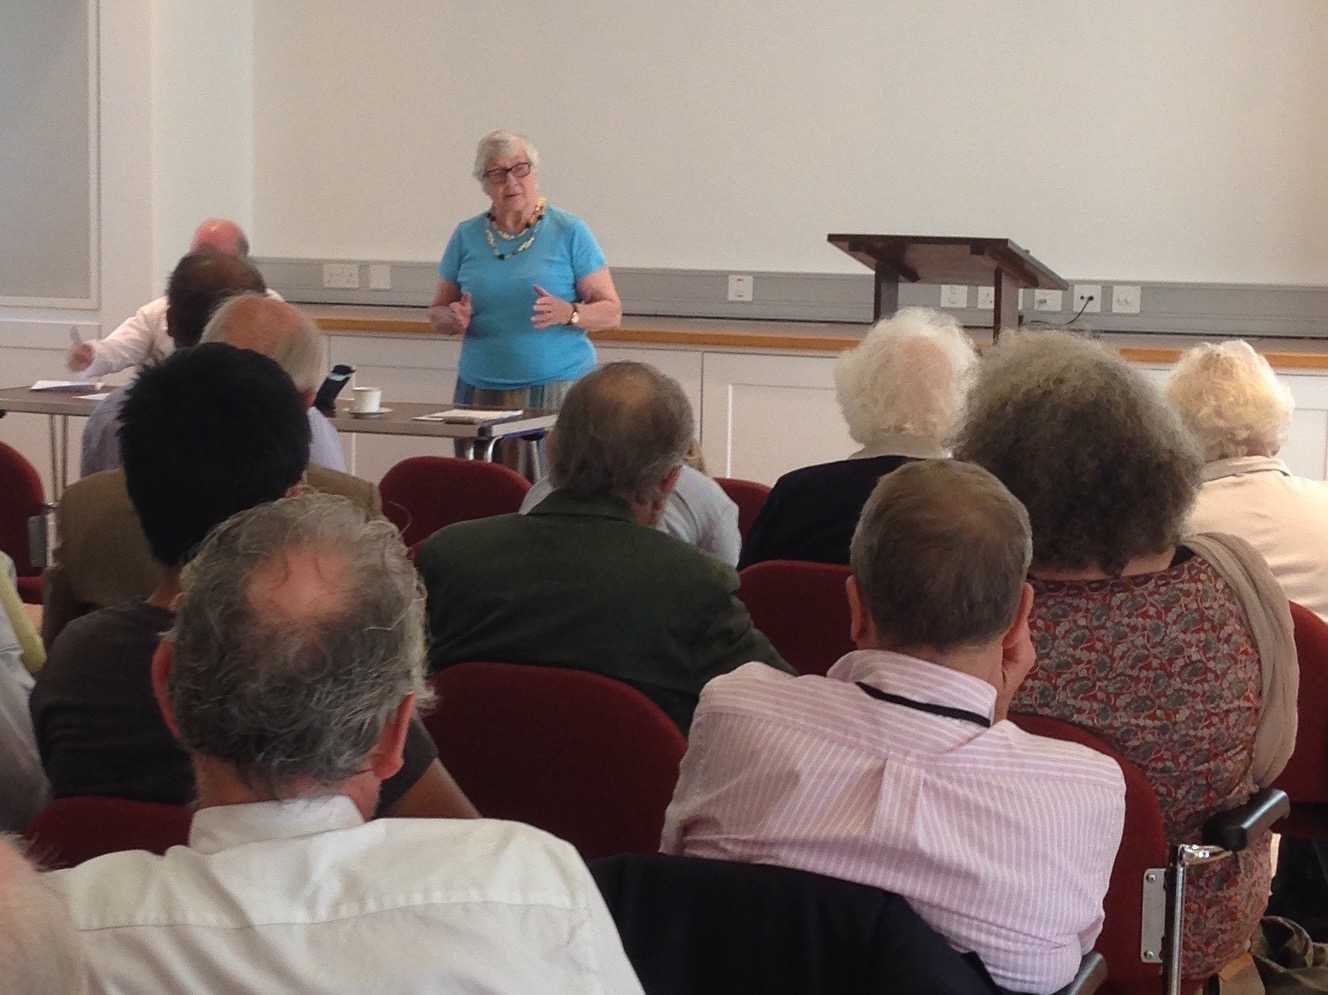 Public lecture by Baroness Williams of Crosby, former Leader of the Liberal Democrats in the House of Lords and Professor Emeritus of Elective Politics at Harvard University. This lecture was held at St Edmund's College on Friday 26 June 2015 as...